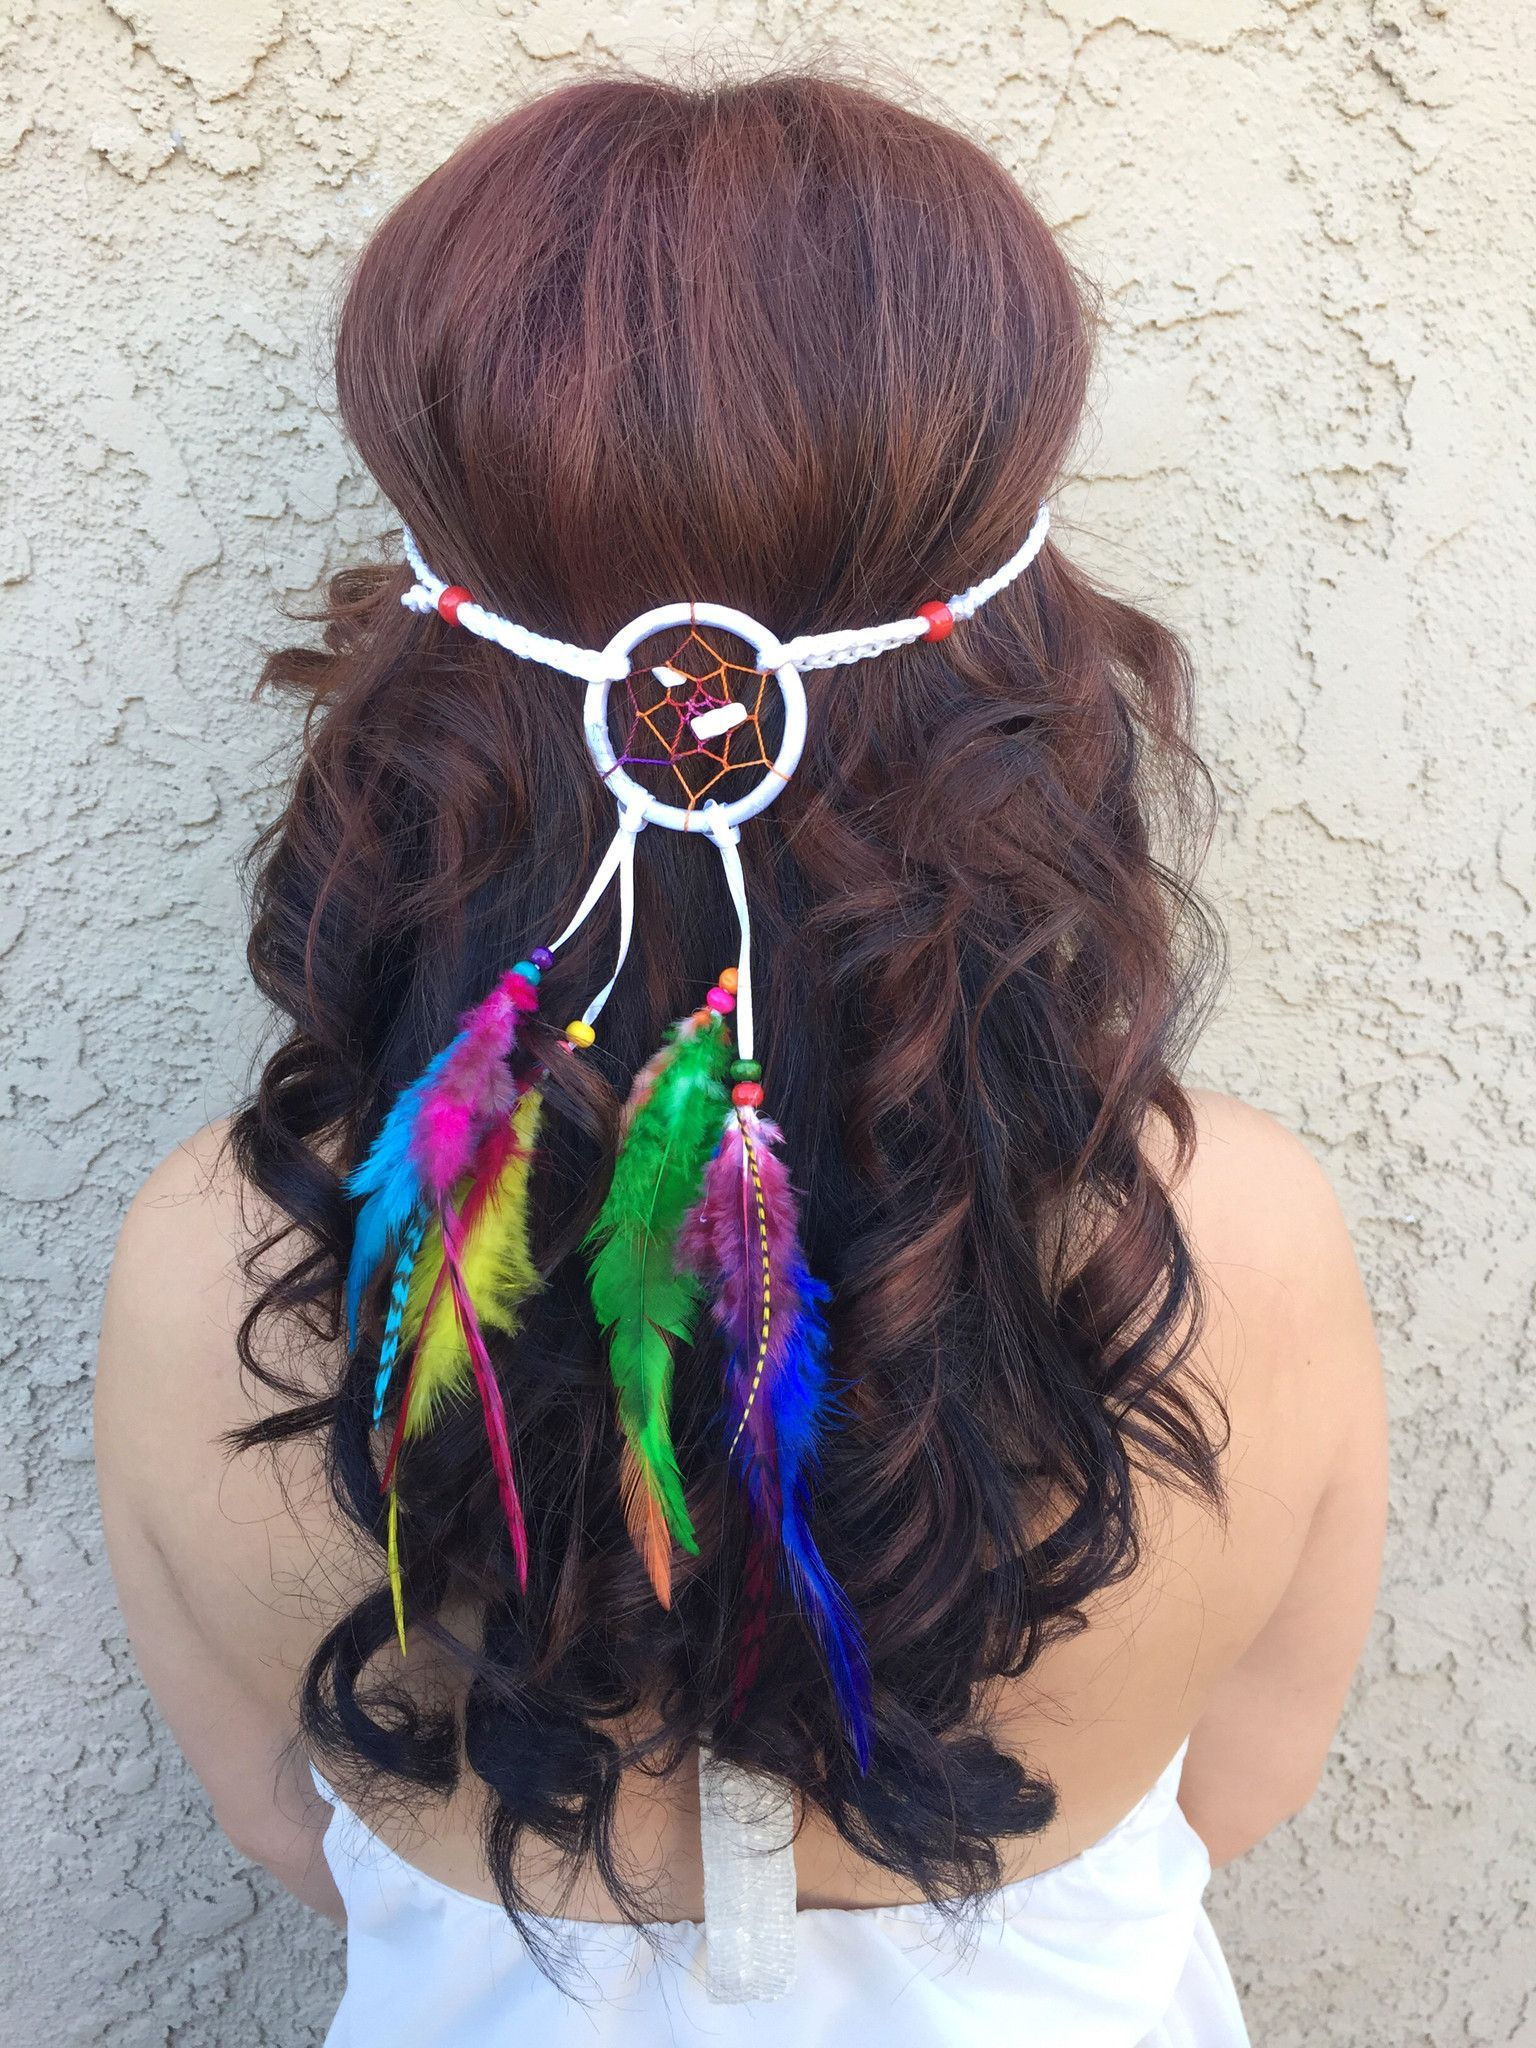 Stunning white and rainbow dreamcatcher headband featuring a mix of  colorful feathers. Dreamcatcher ring is 2